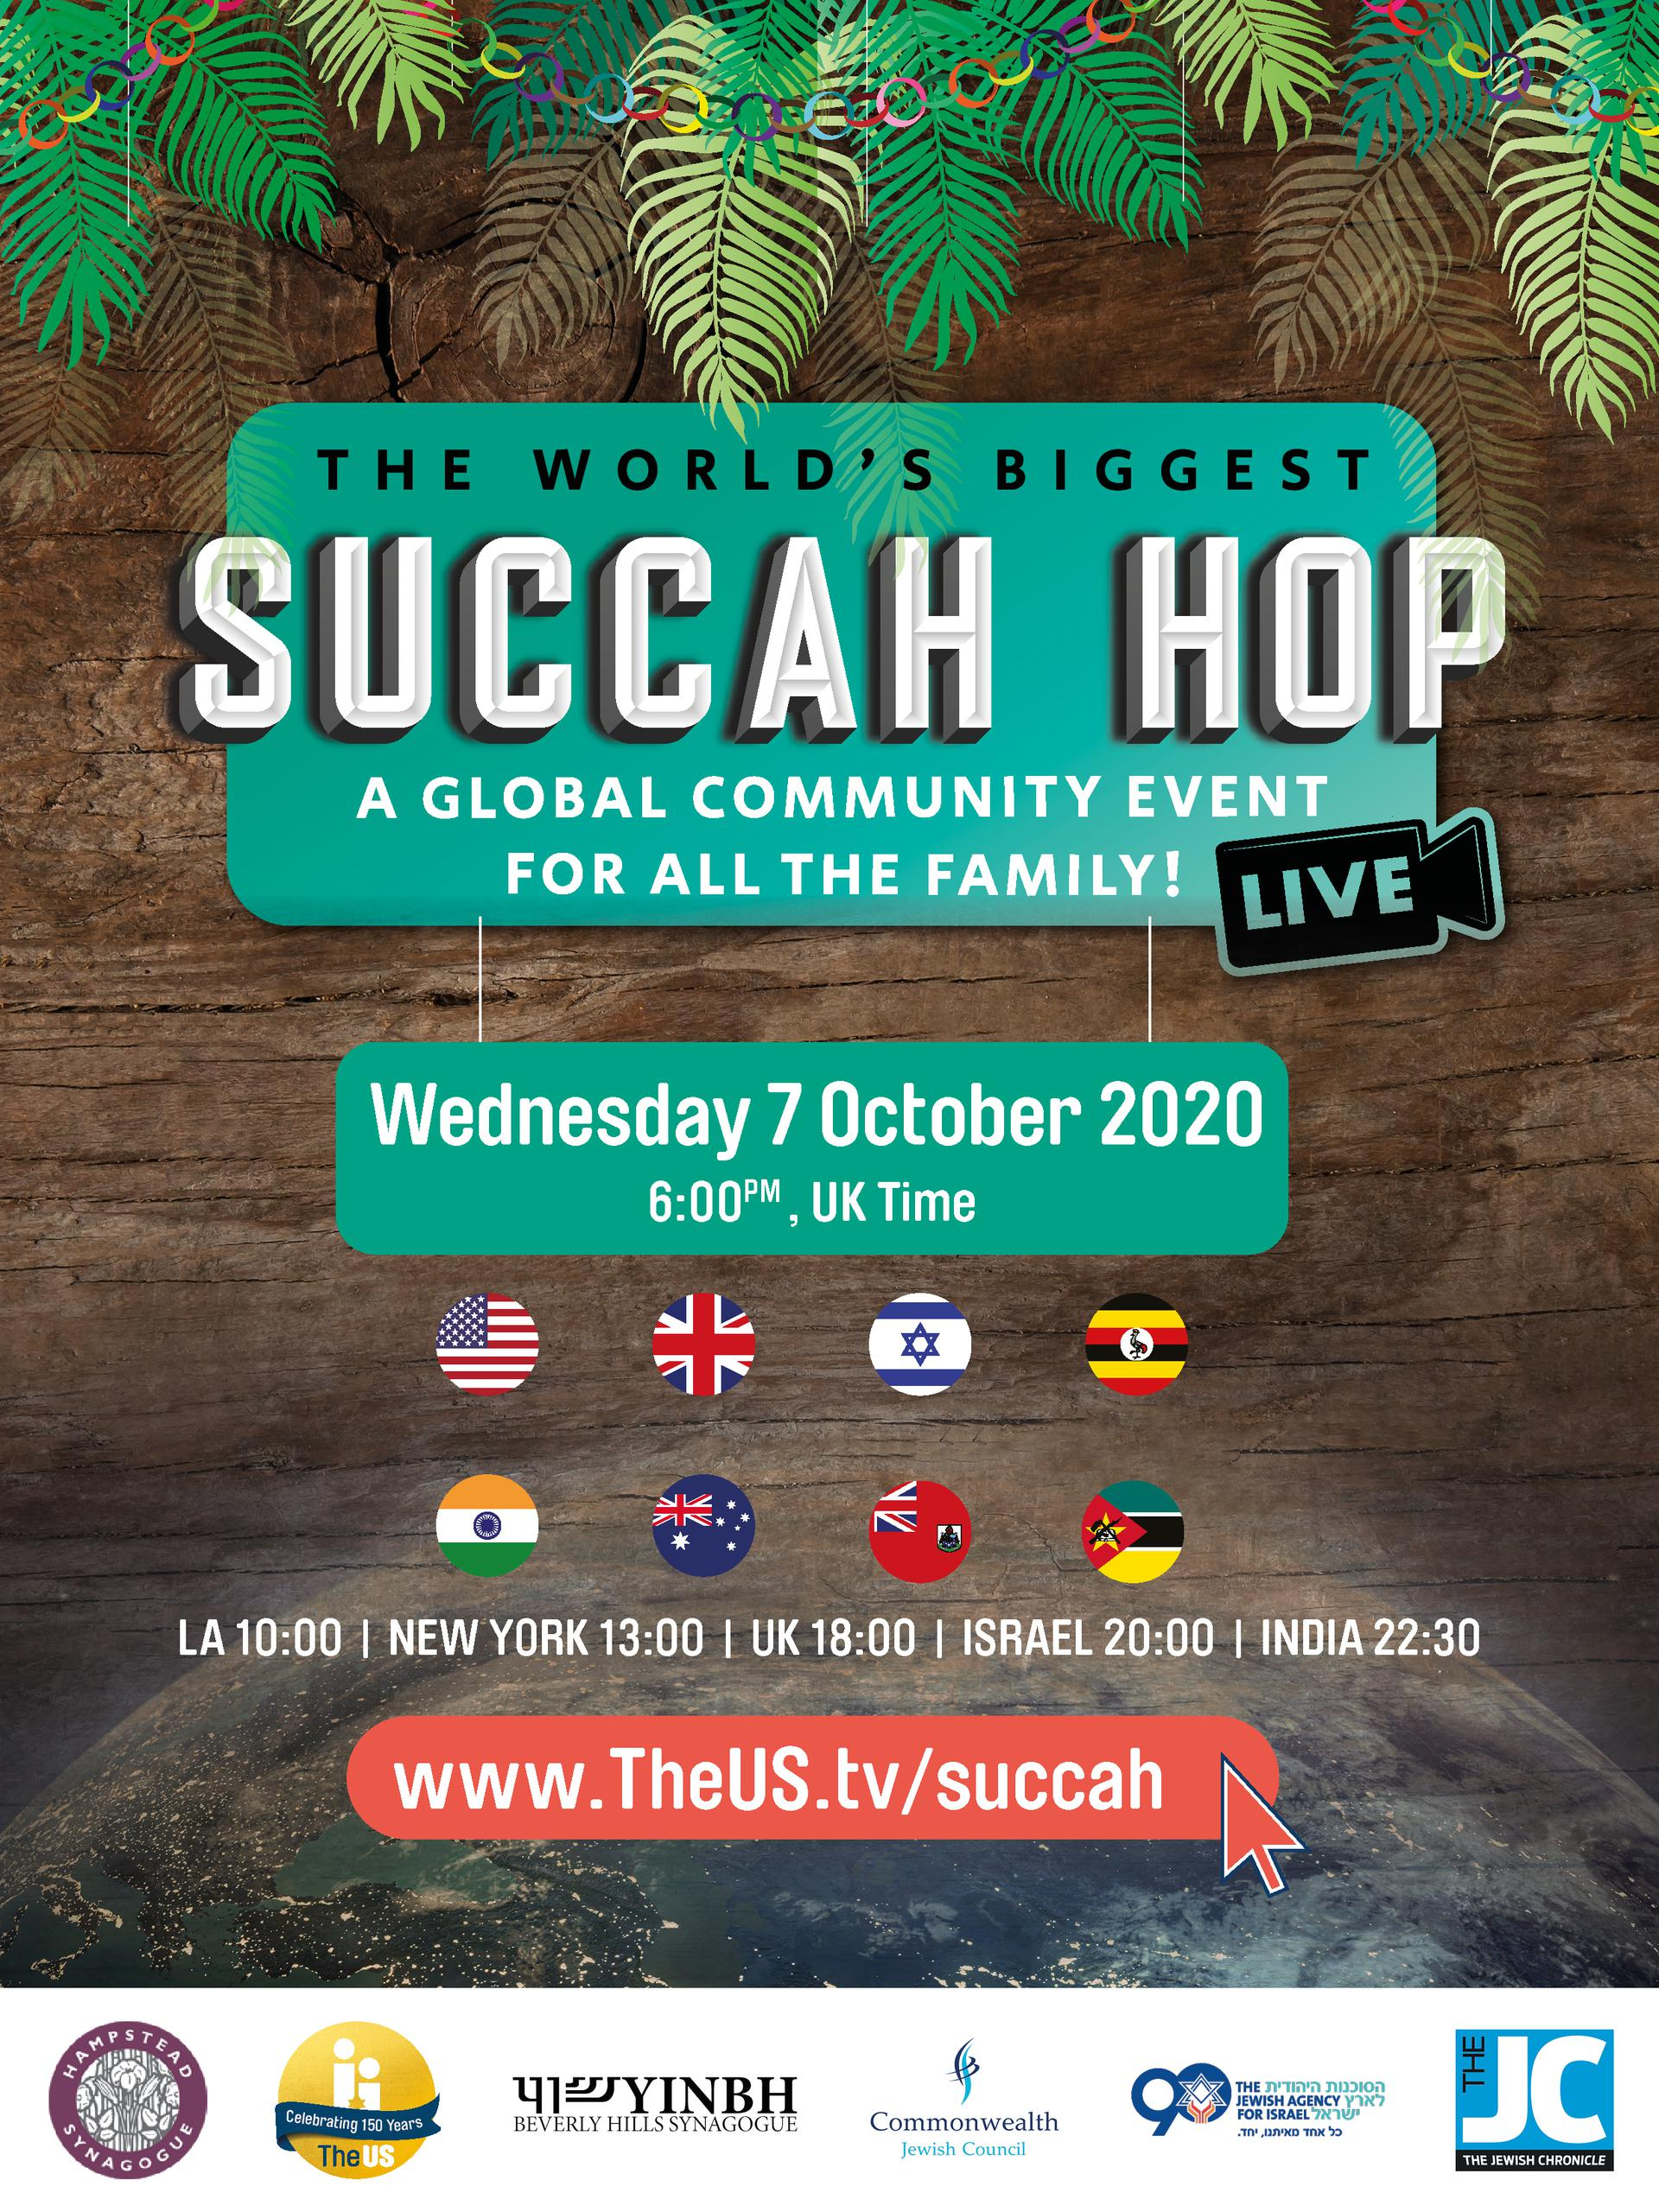 The world's biggest Succah hop